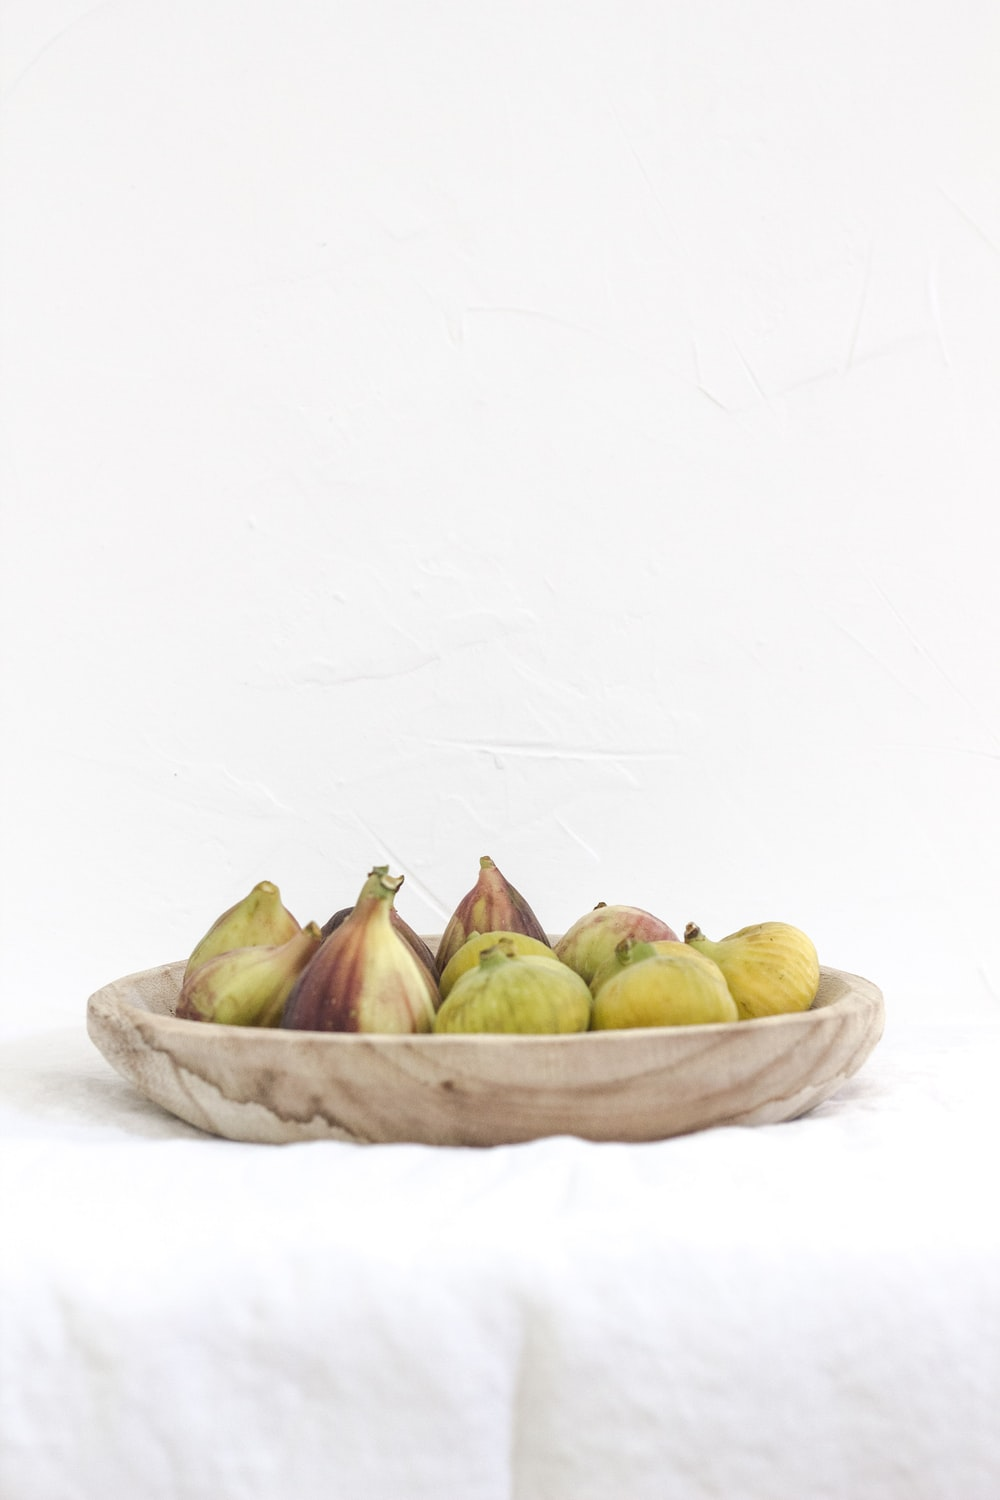 figs on round tray